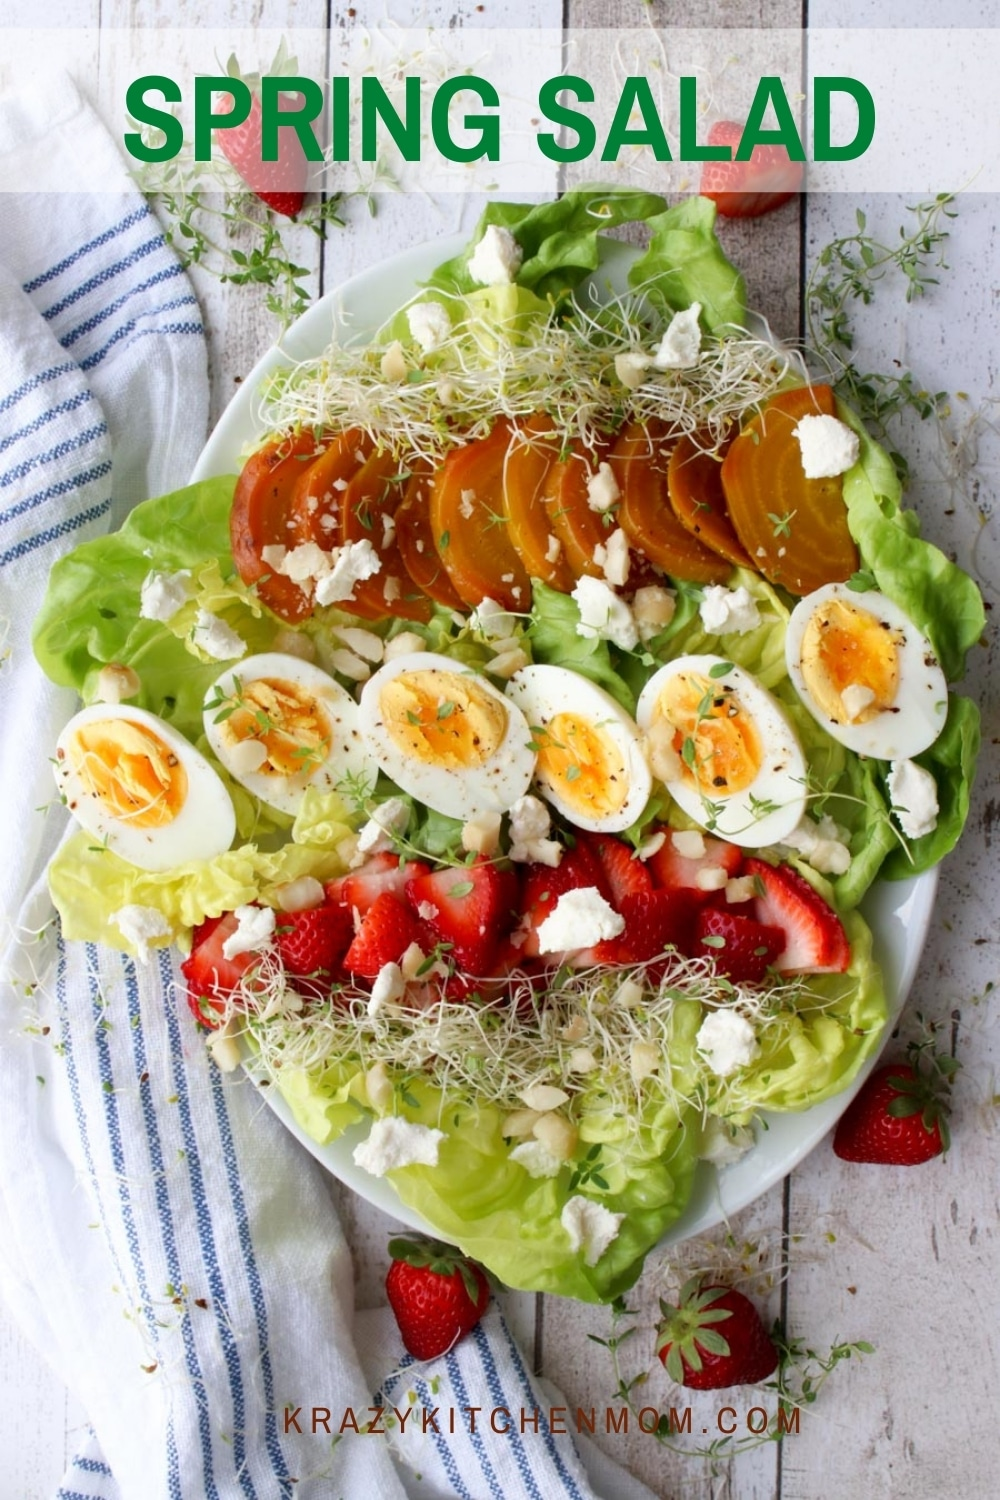 This fresh spring salad filled with soft crispy butter lettuce, strawberries, beets, hard-boiled eggs, and goat cheese will brighten any salad lover's day. via @krazykitchenmom